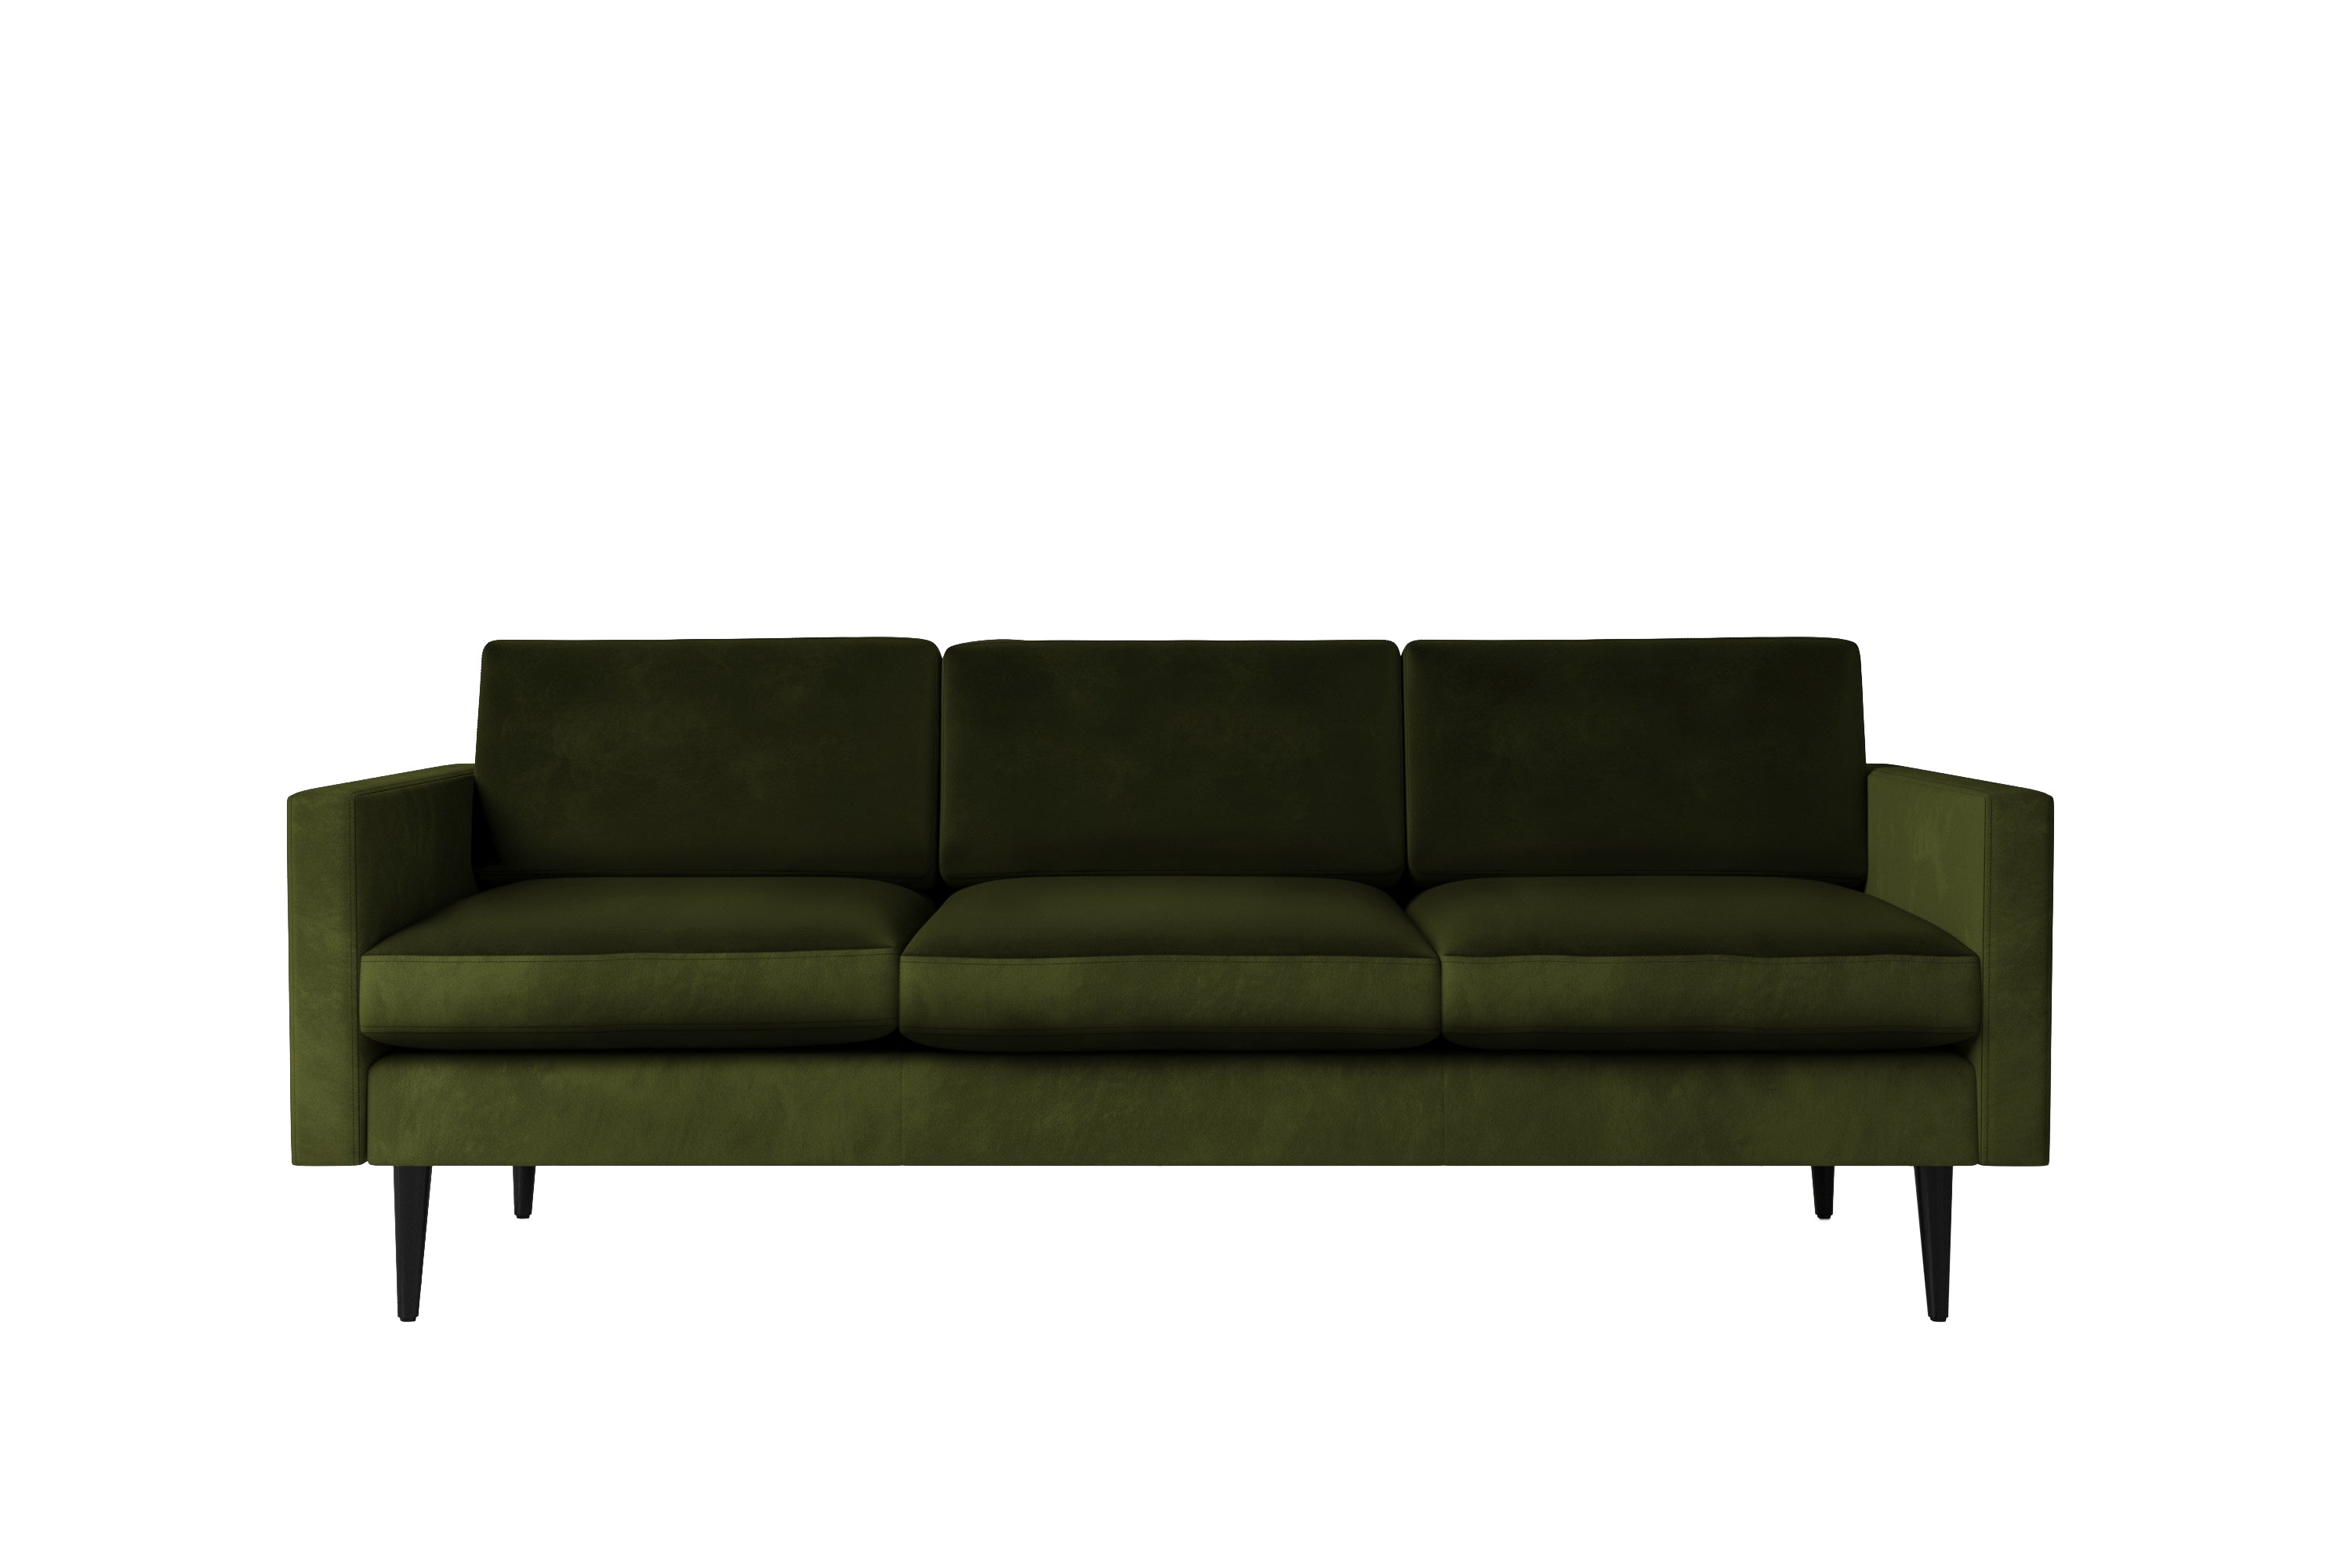 Swyft | Model 01 Velvet 3 Seater Sofa | Vine